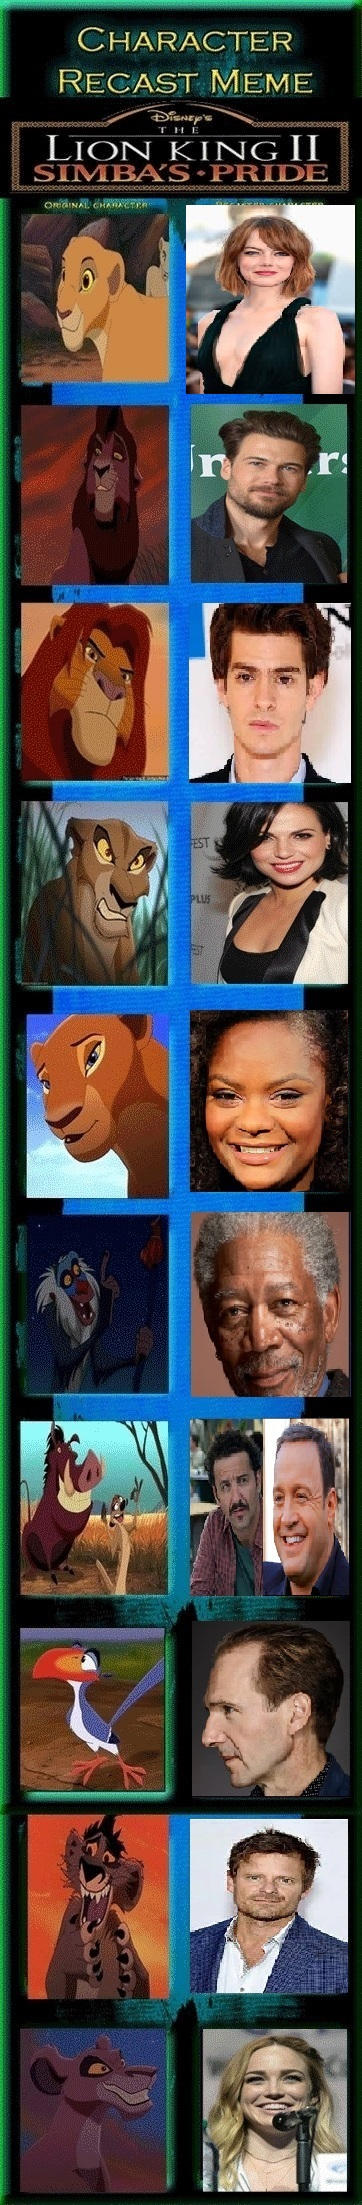 live action lion king ii  simba u0026 39 s pride recast by